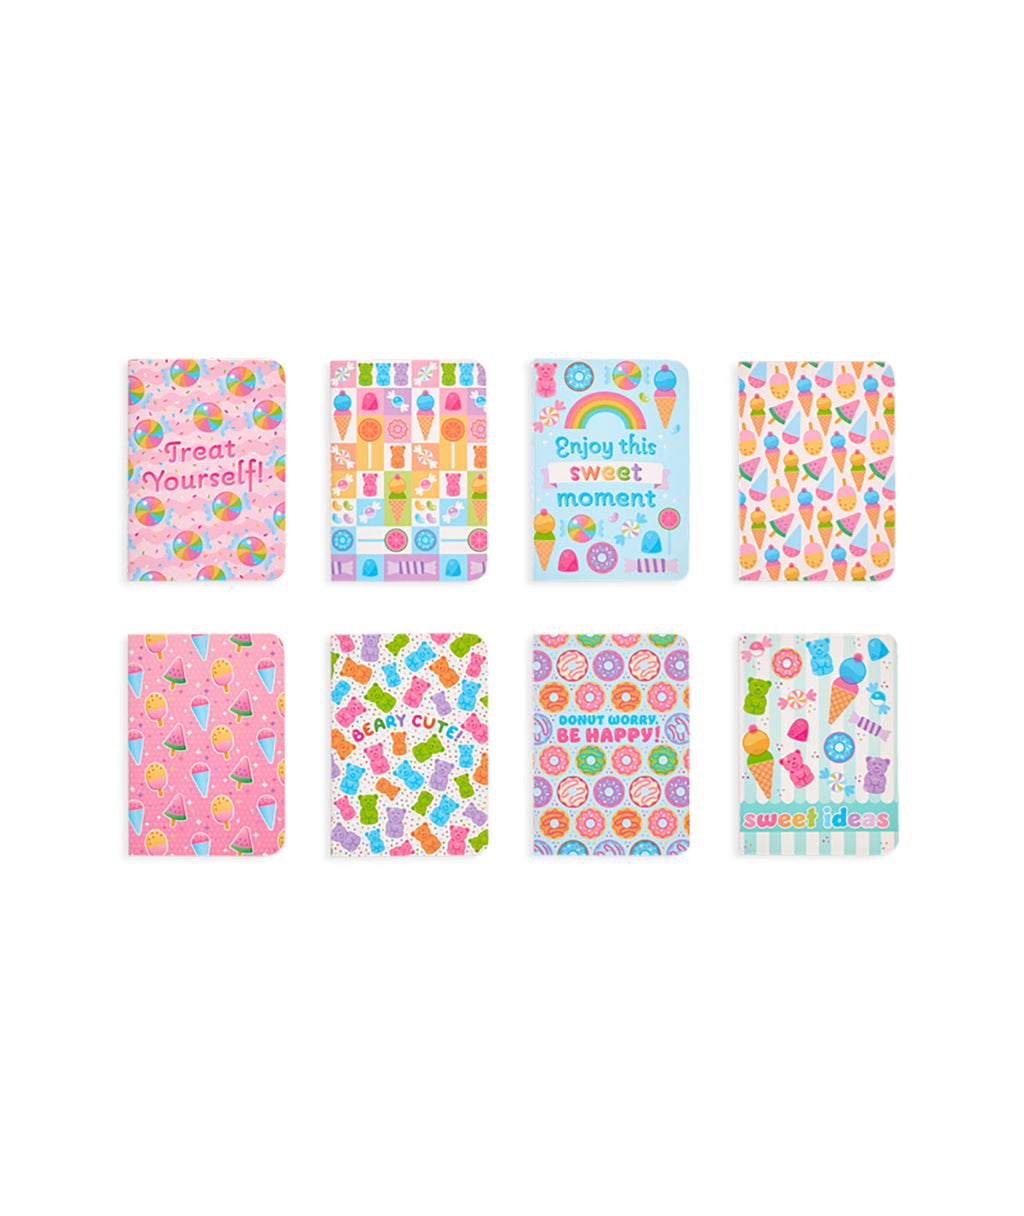 Mini Sugar Joy Journals - Set of 8